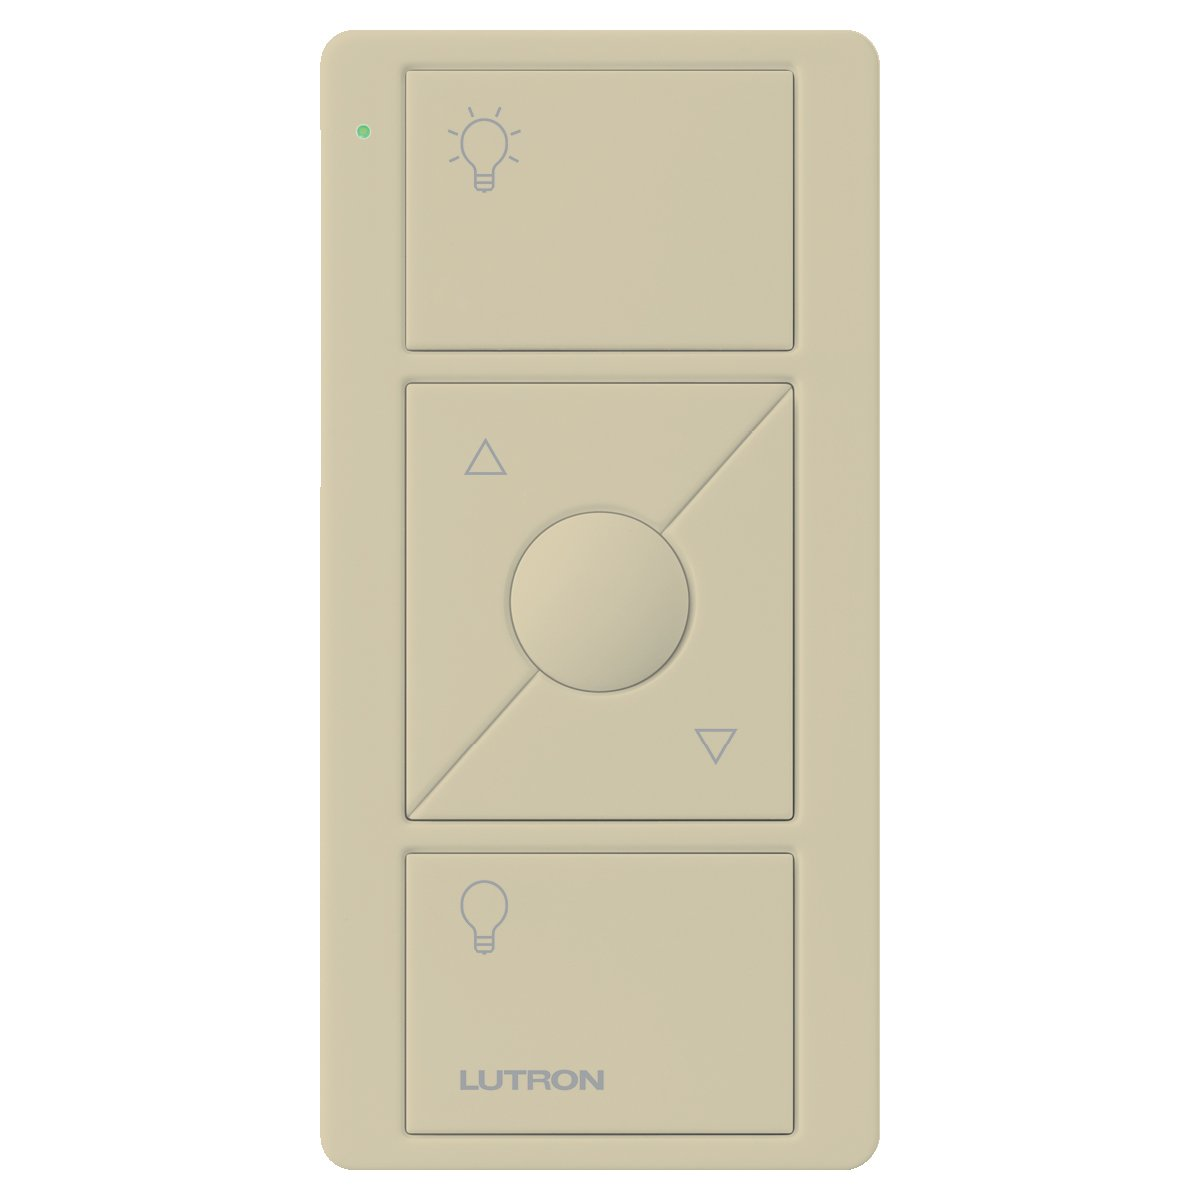 Lutron 3-Button with Raise/Lower Pico Remote for Caseta Wireless Smart Lighting Dimmer Switch, PJ2-3BRL-GIV-L01, Ivory - - Amazon.com